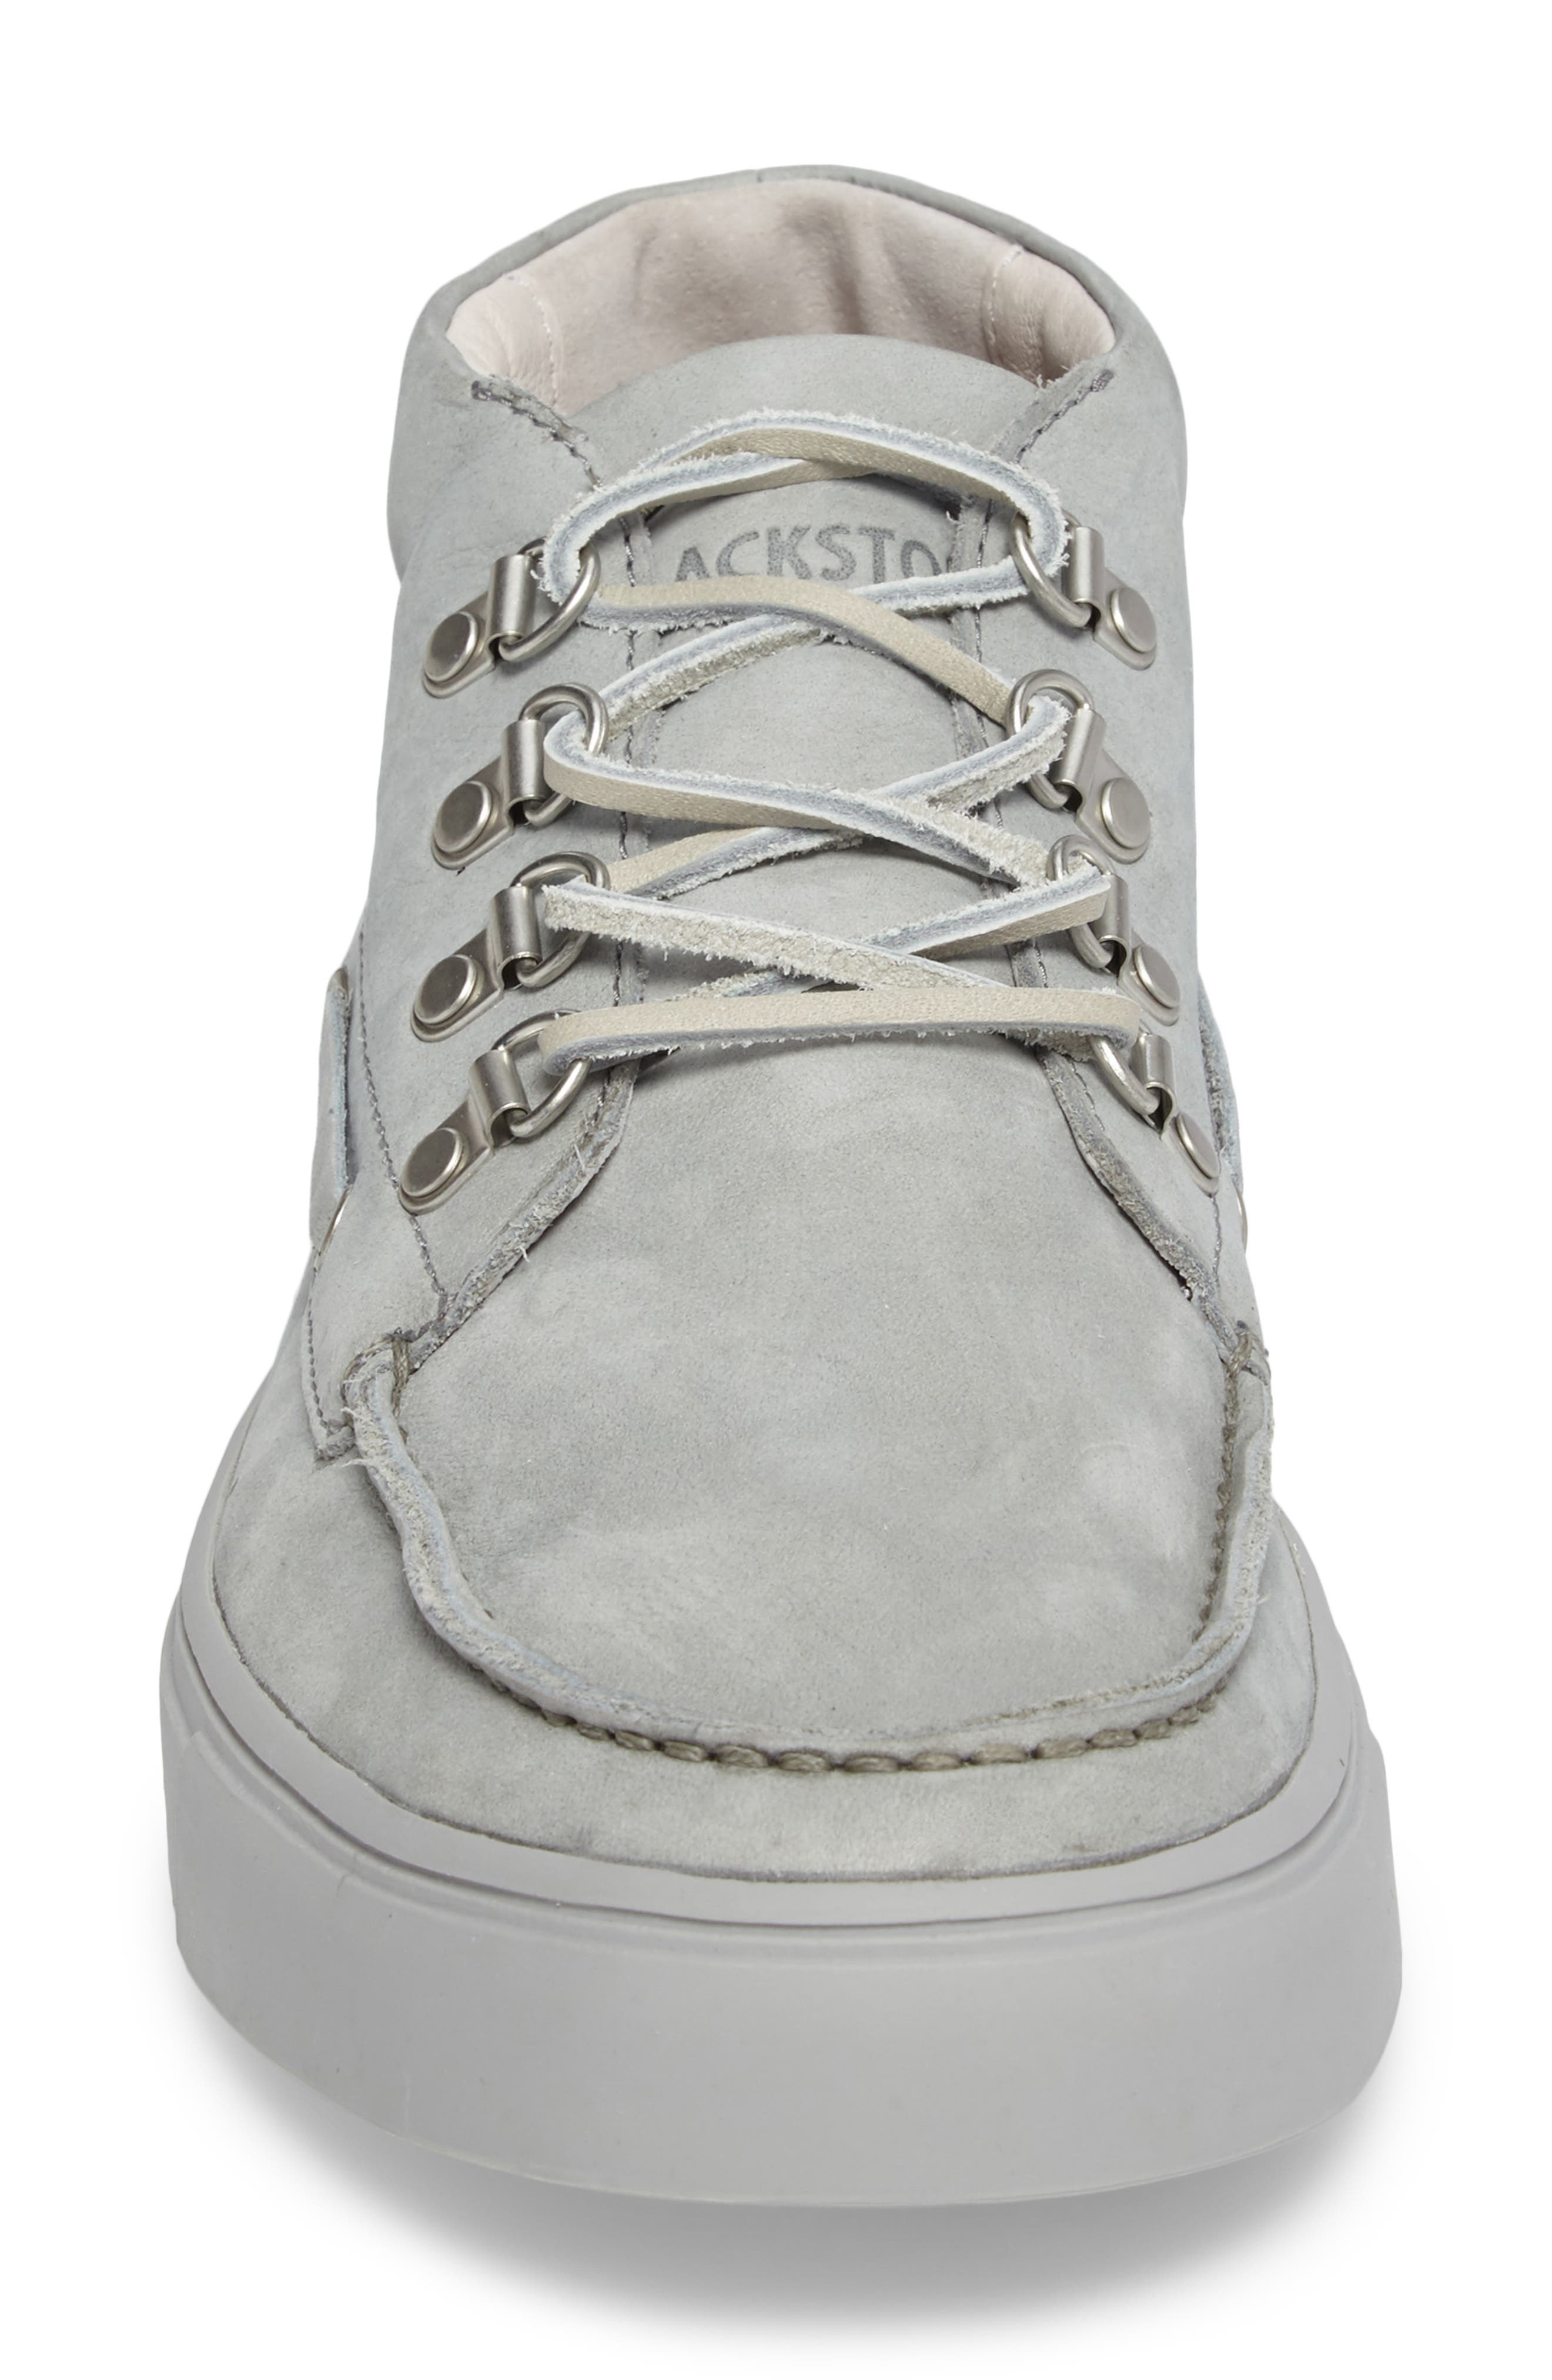 NM09 Mid Top Boat Sneaker,                             Alternate thumbnail 4, color,                             Limestone Leather